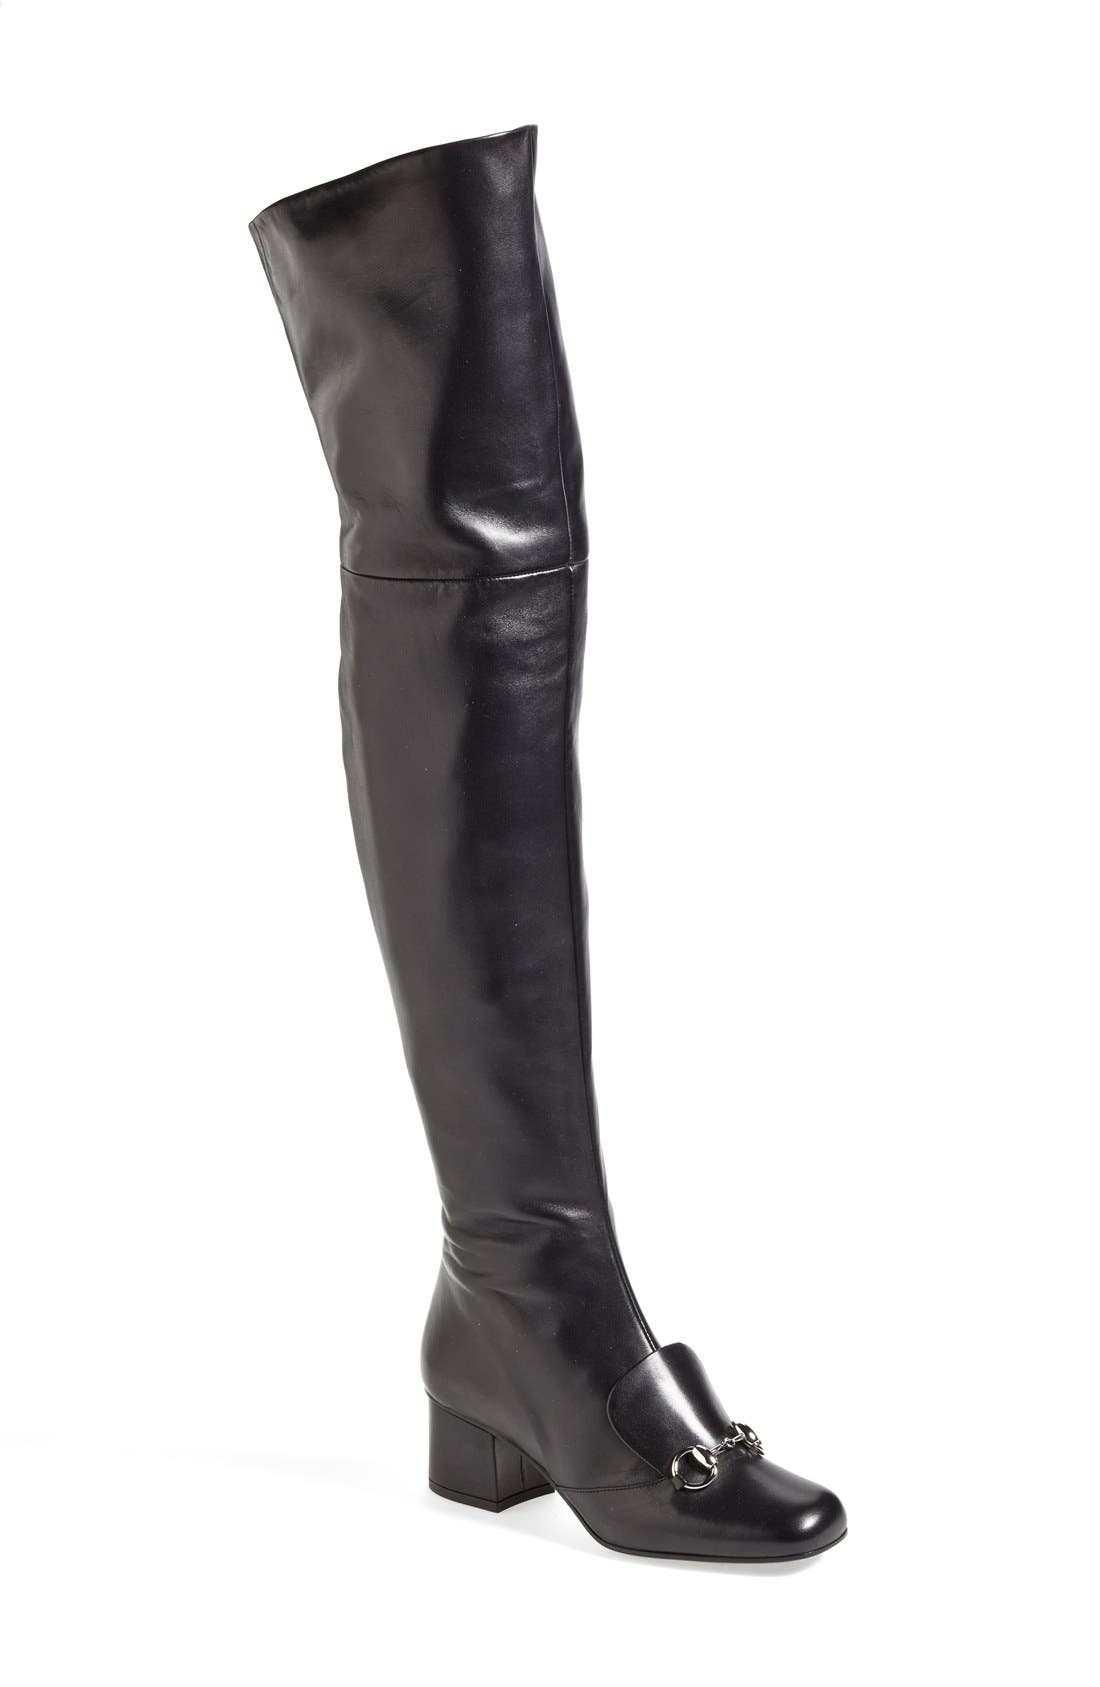 GUCCI 'Lillian' Over the Knee Boot, Main, color, 001